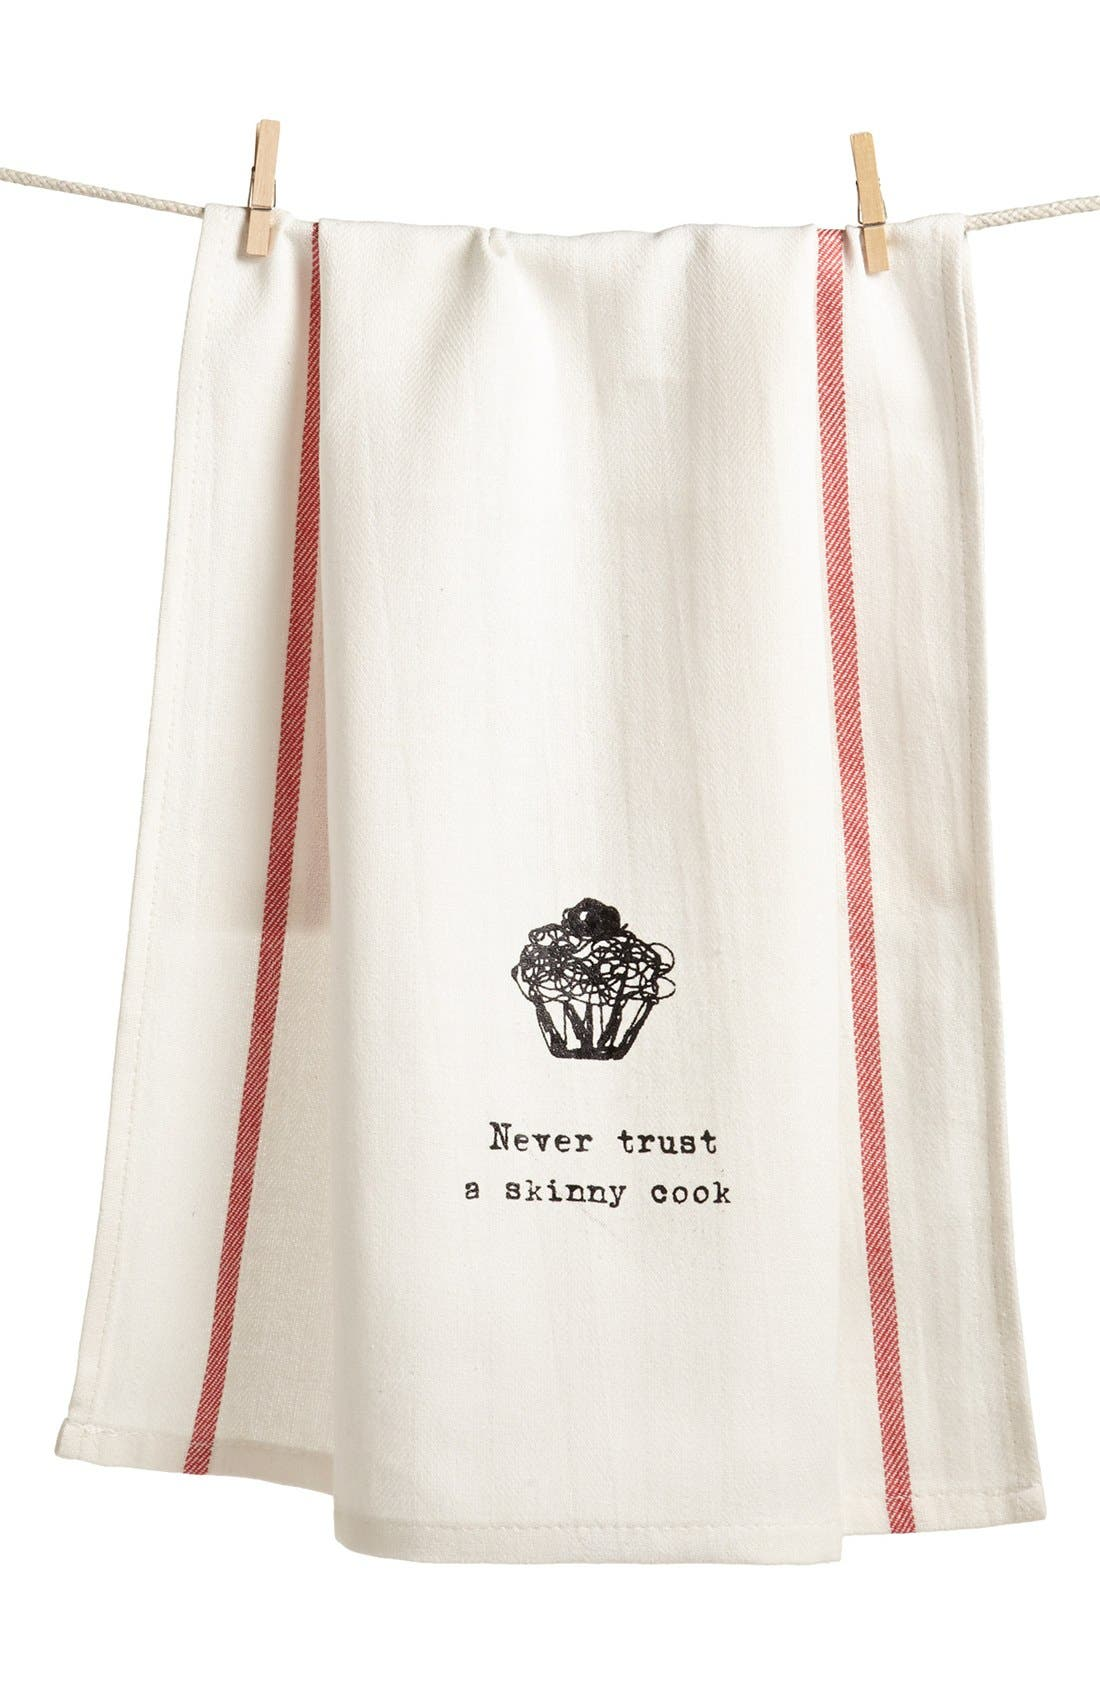 Main Image - Second Nature By Hand 'Never Trust a Skinny Cook' Towel